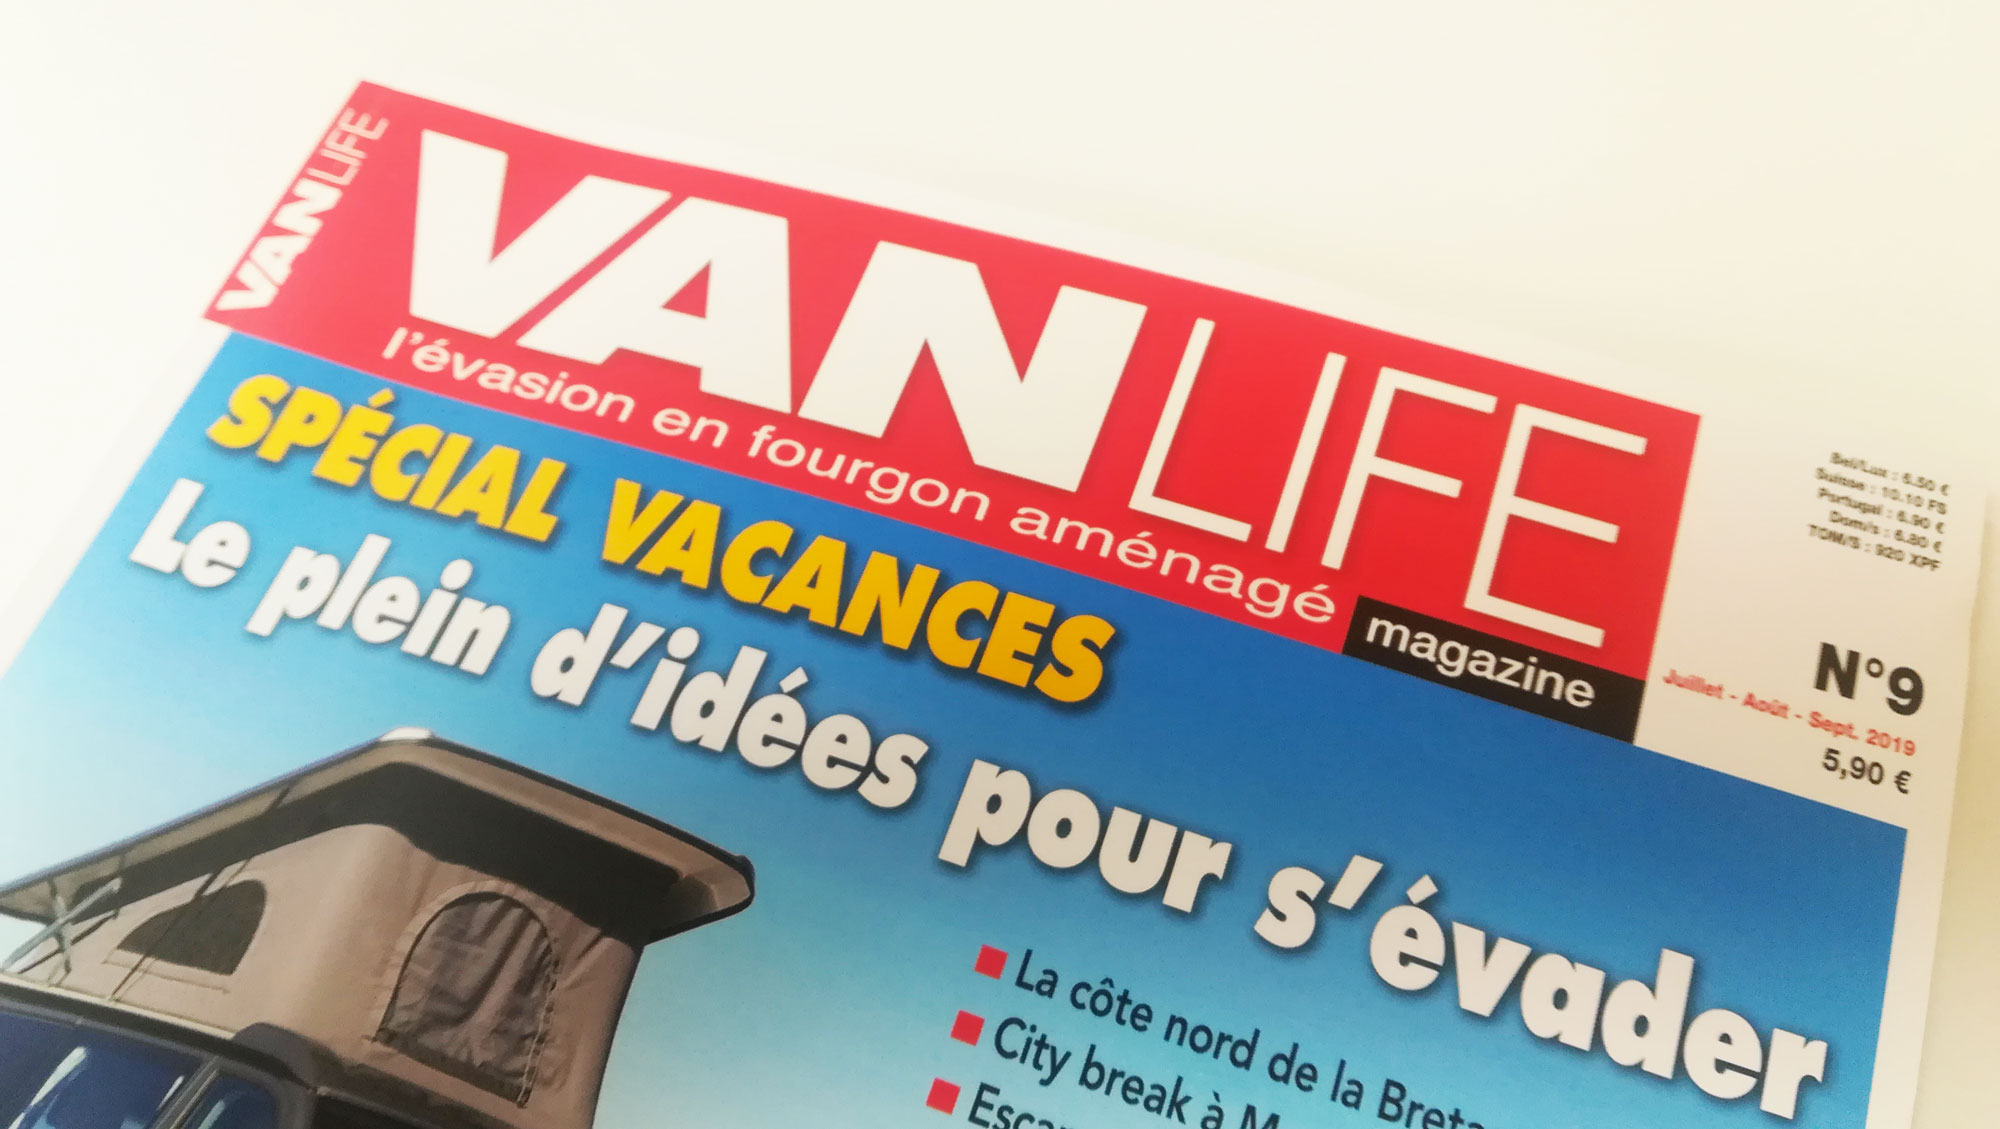 creation-annonce-presse-constructeur-de-vans-amenages-randger-dordogne